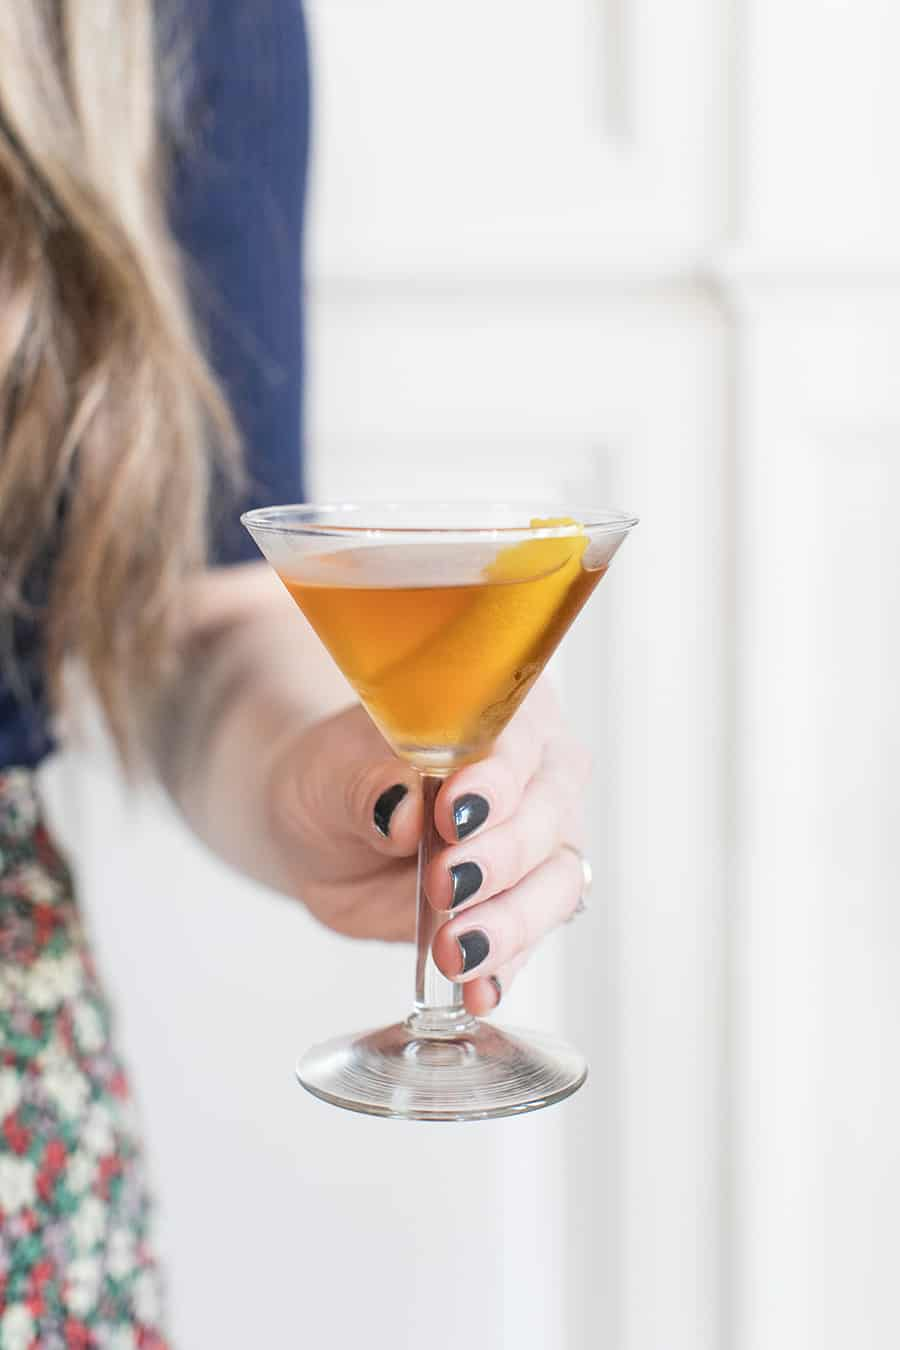 Holding a Bénédictine cocktail in a martini glass.